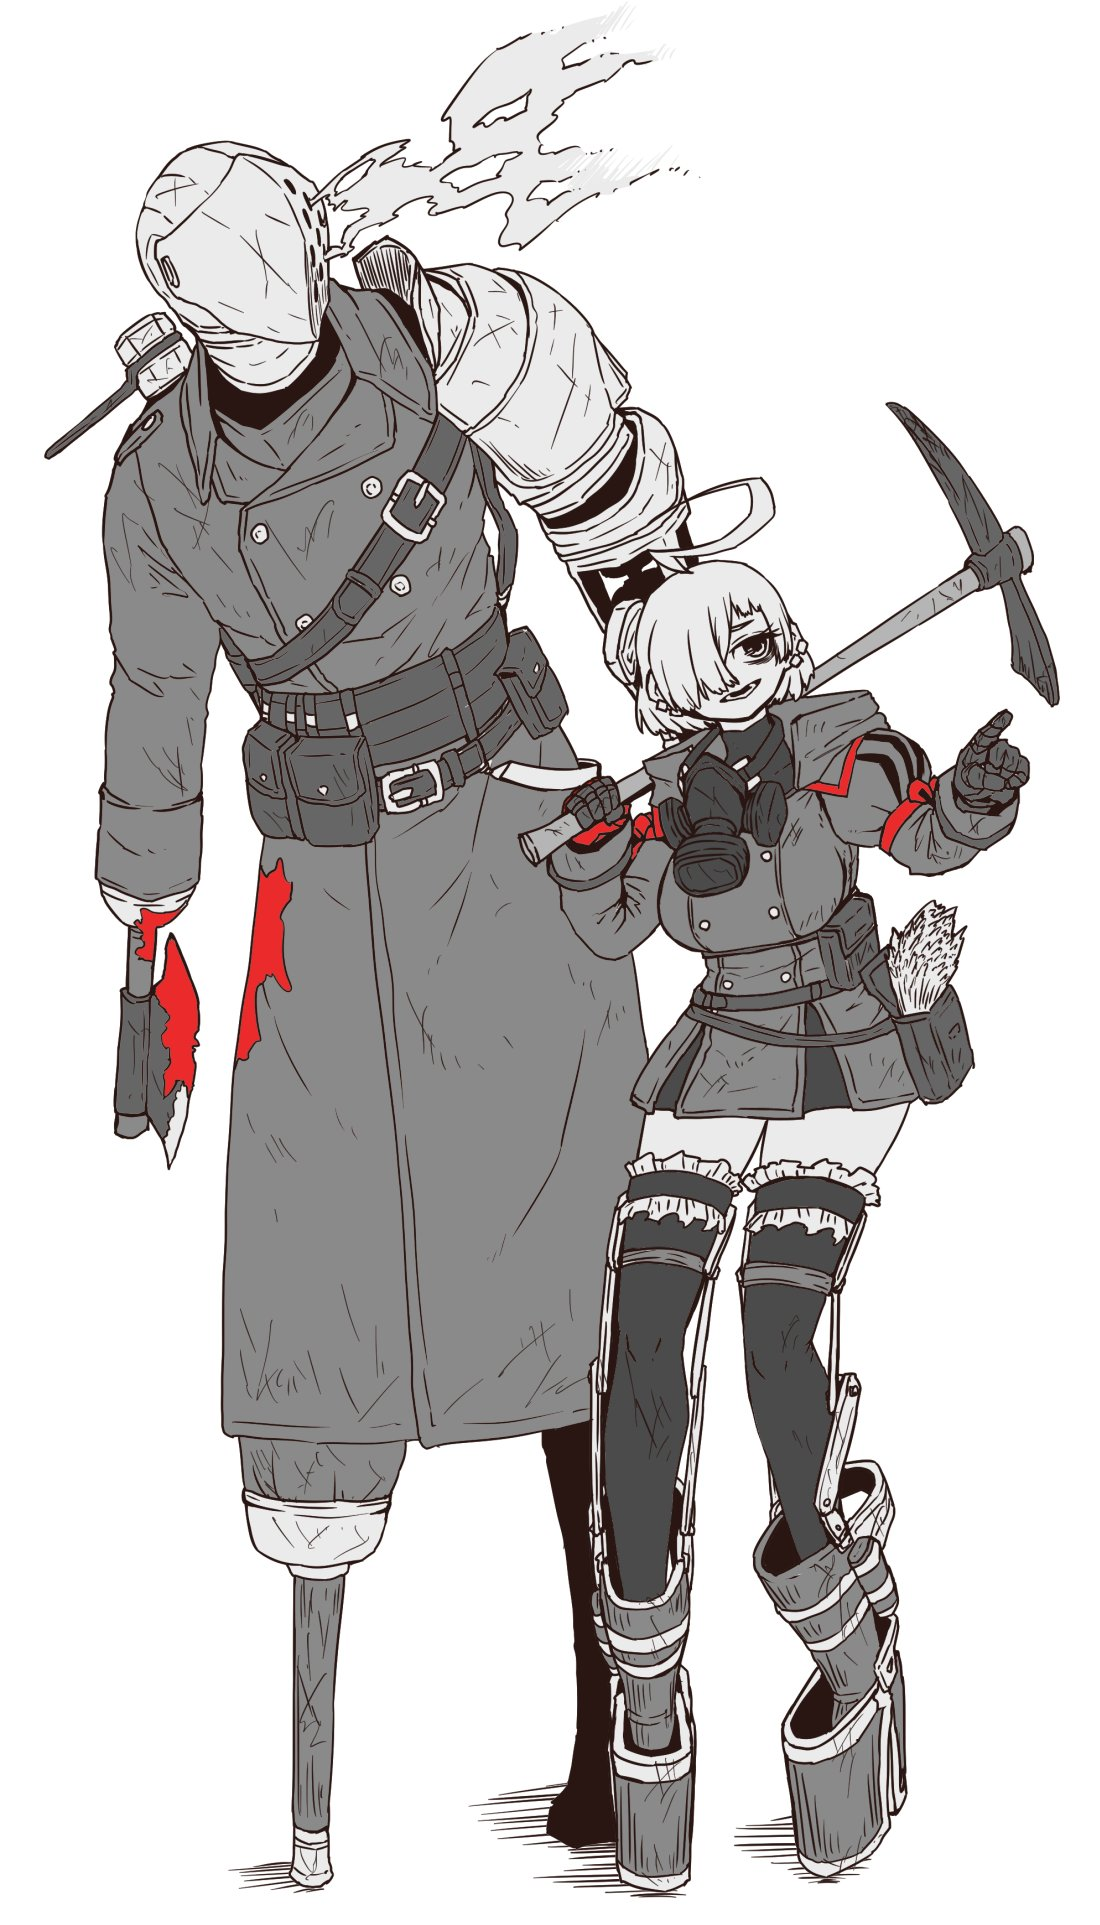 1boy 1girl ahoge asymmetrical_arms axe blood blood_on_clothes blood_splatter breasts crutch cyborg eyebrows father_and_daughter gas_mask gloves hair_over_one_eye helmet highres holding holding_weapon indie_virtual_youtuber jacket jinzou_(homunculus_no_jinzou) knight large_breasts limited_palette mask mechanical_arms military_jacket parent_and_child peg_leg pickaxe pocket pointing puffy_sleeves red_gloves steam steampunk thigh-highs thighs v_no_name_(vtuber) virtual_youtuber weapon weeds white_background zyugoya